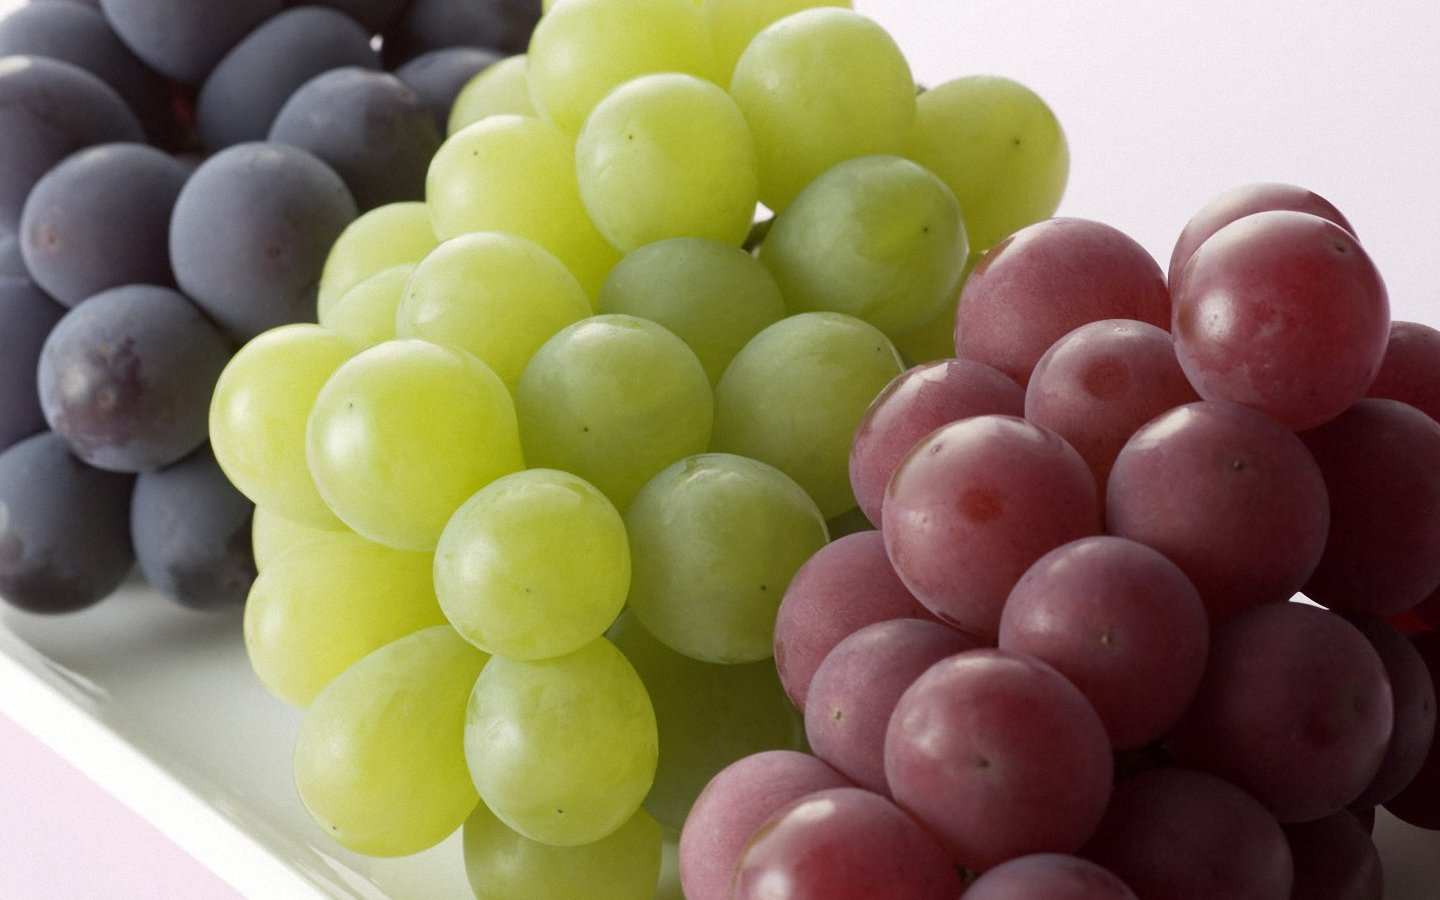 Grape Wallpaper 1440x900 Wallpapers 1440x900 Wallpapers Pictures 1440x900